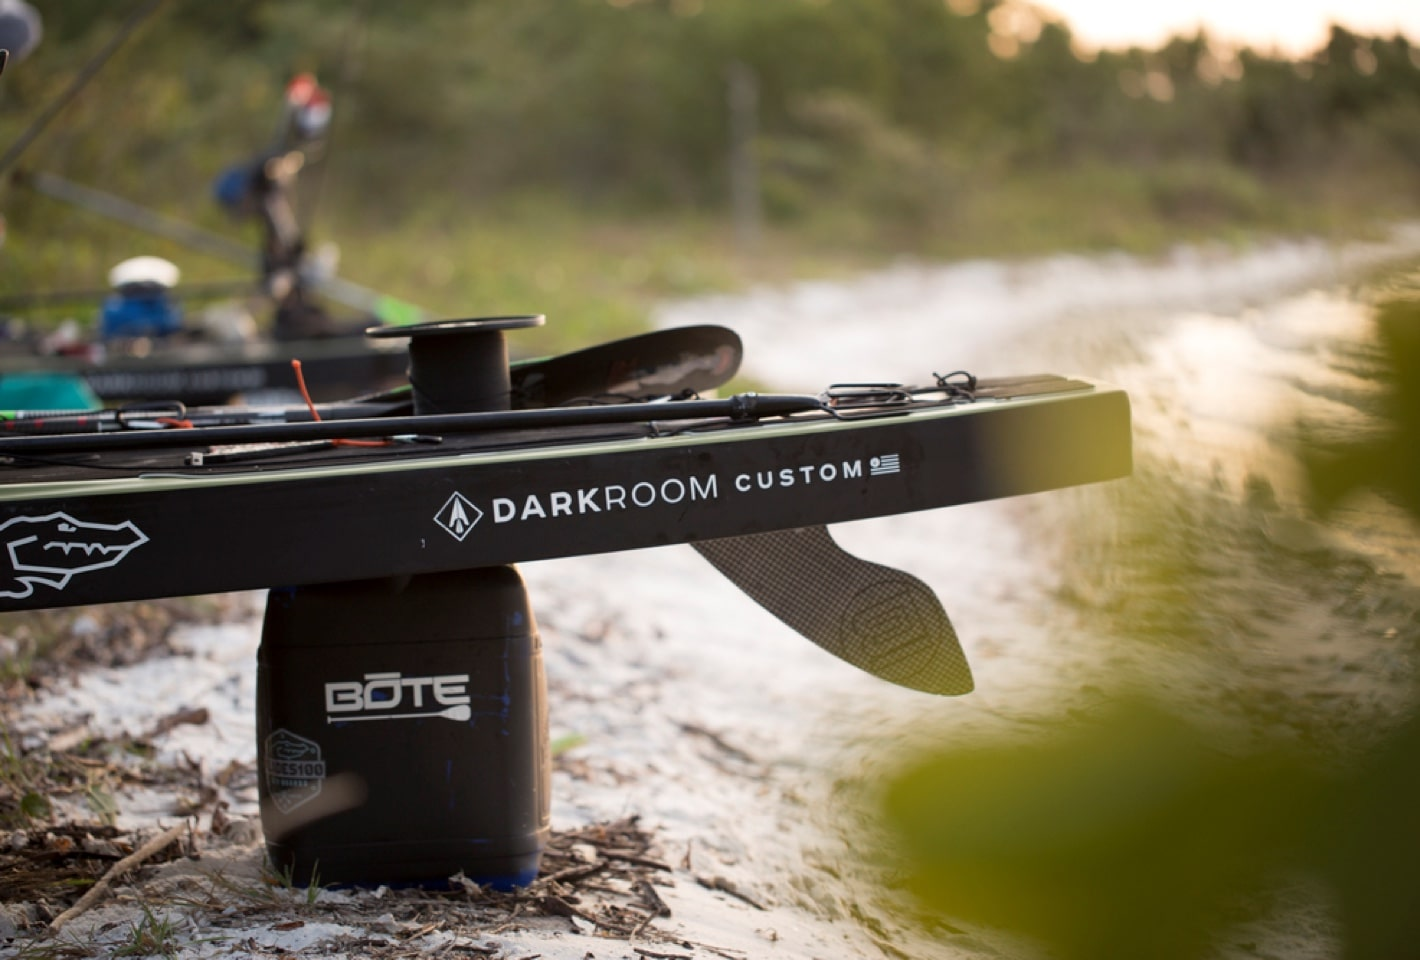 BOTE darkroom custom paddle board